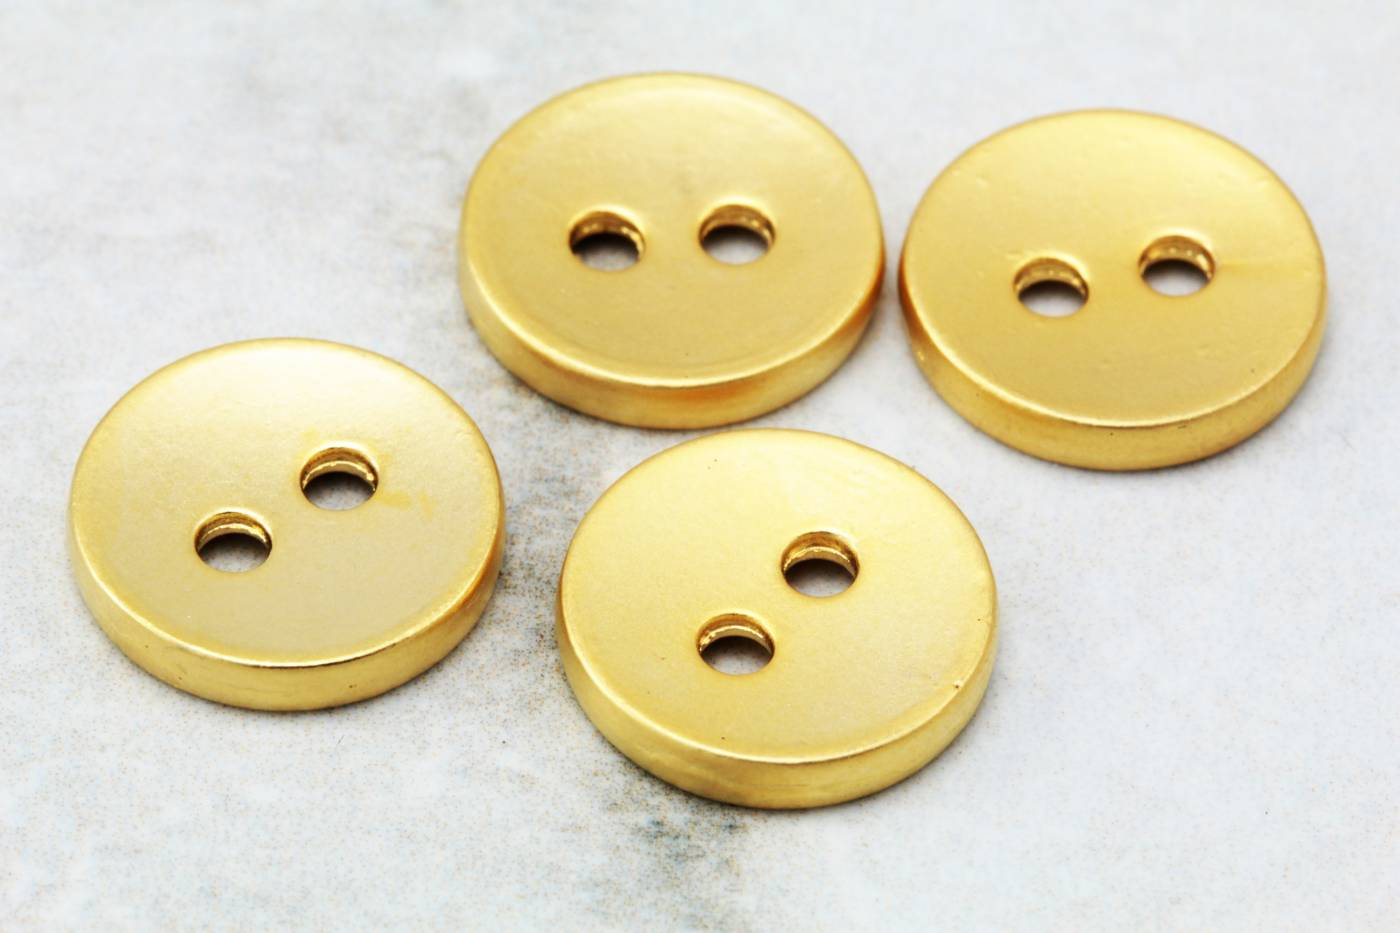 gold-metal-round-disc-button-charms.jpg